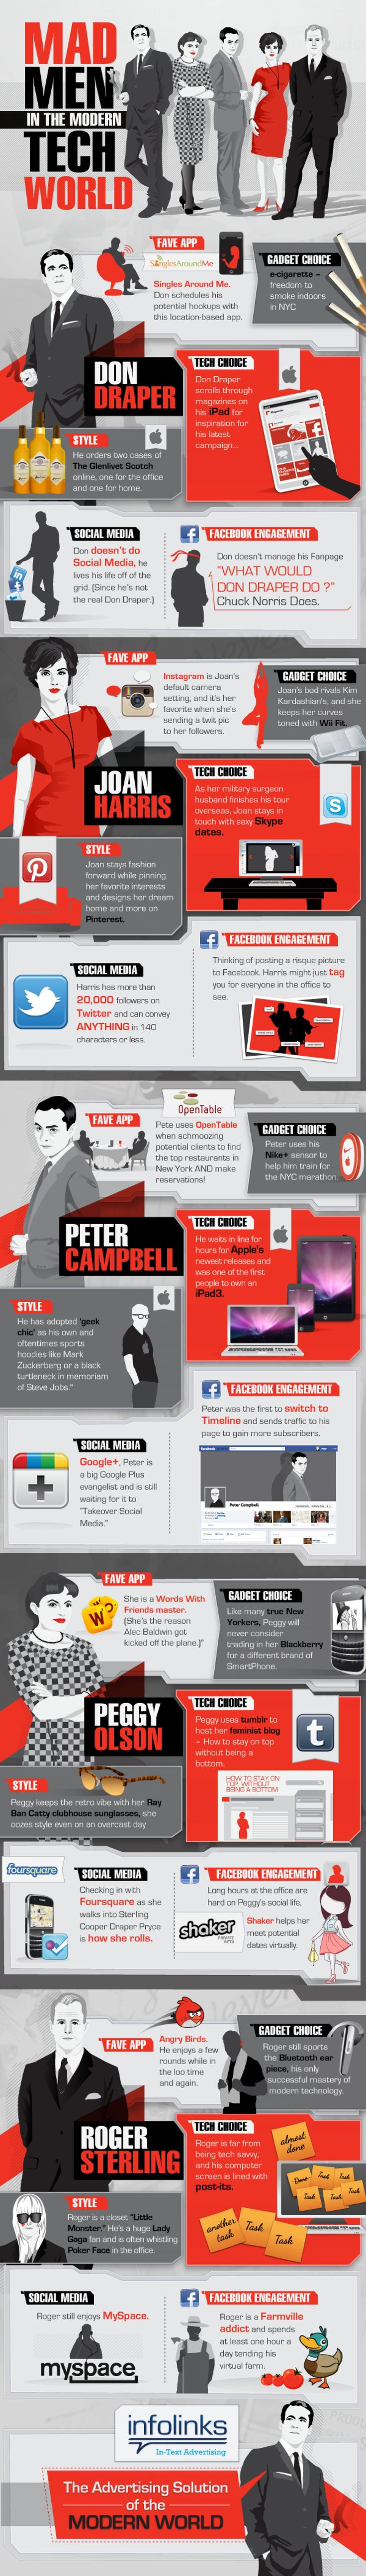 Mad Men in the Modern Tech World InfographicMaster Ads, Infolink Answers, Social Media, Madmen, Creative Perspective, Mad Men, Ads Men, Infographic, Modern Tech